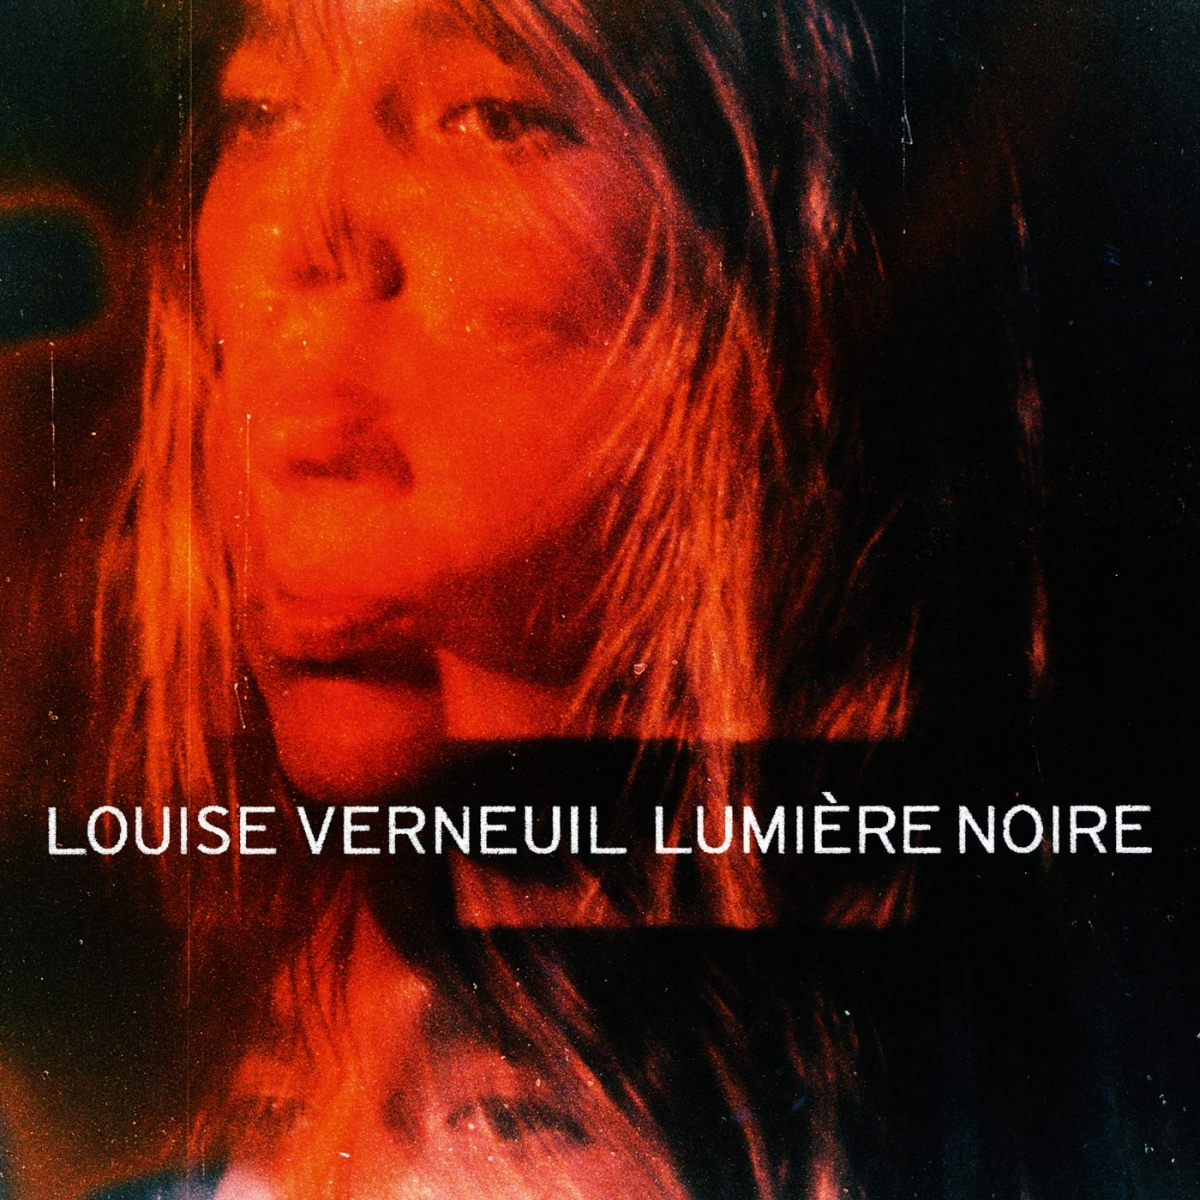 louise_verneuil.jpg